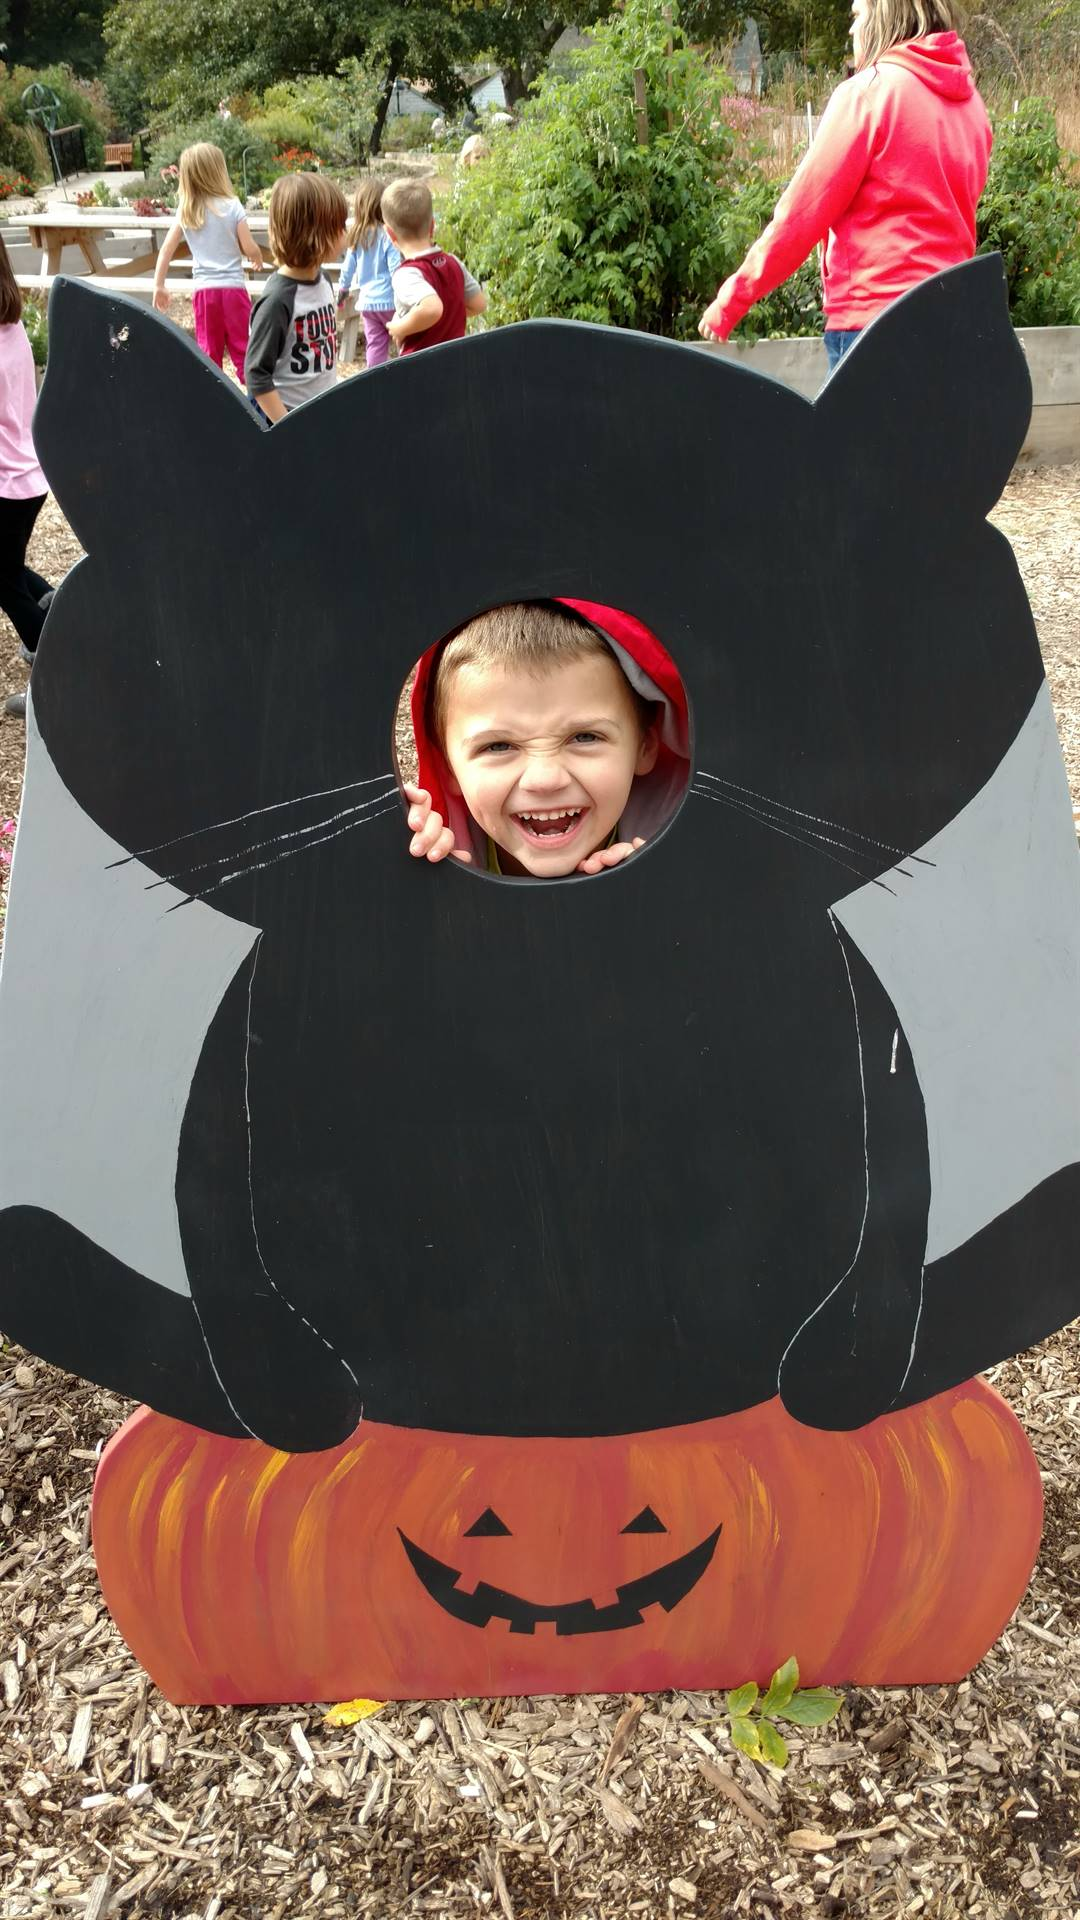 Student posing in a black cat photo display